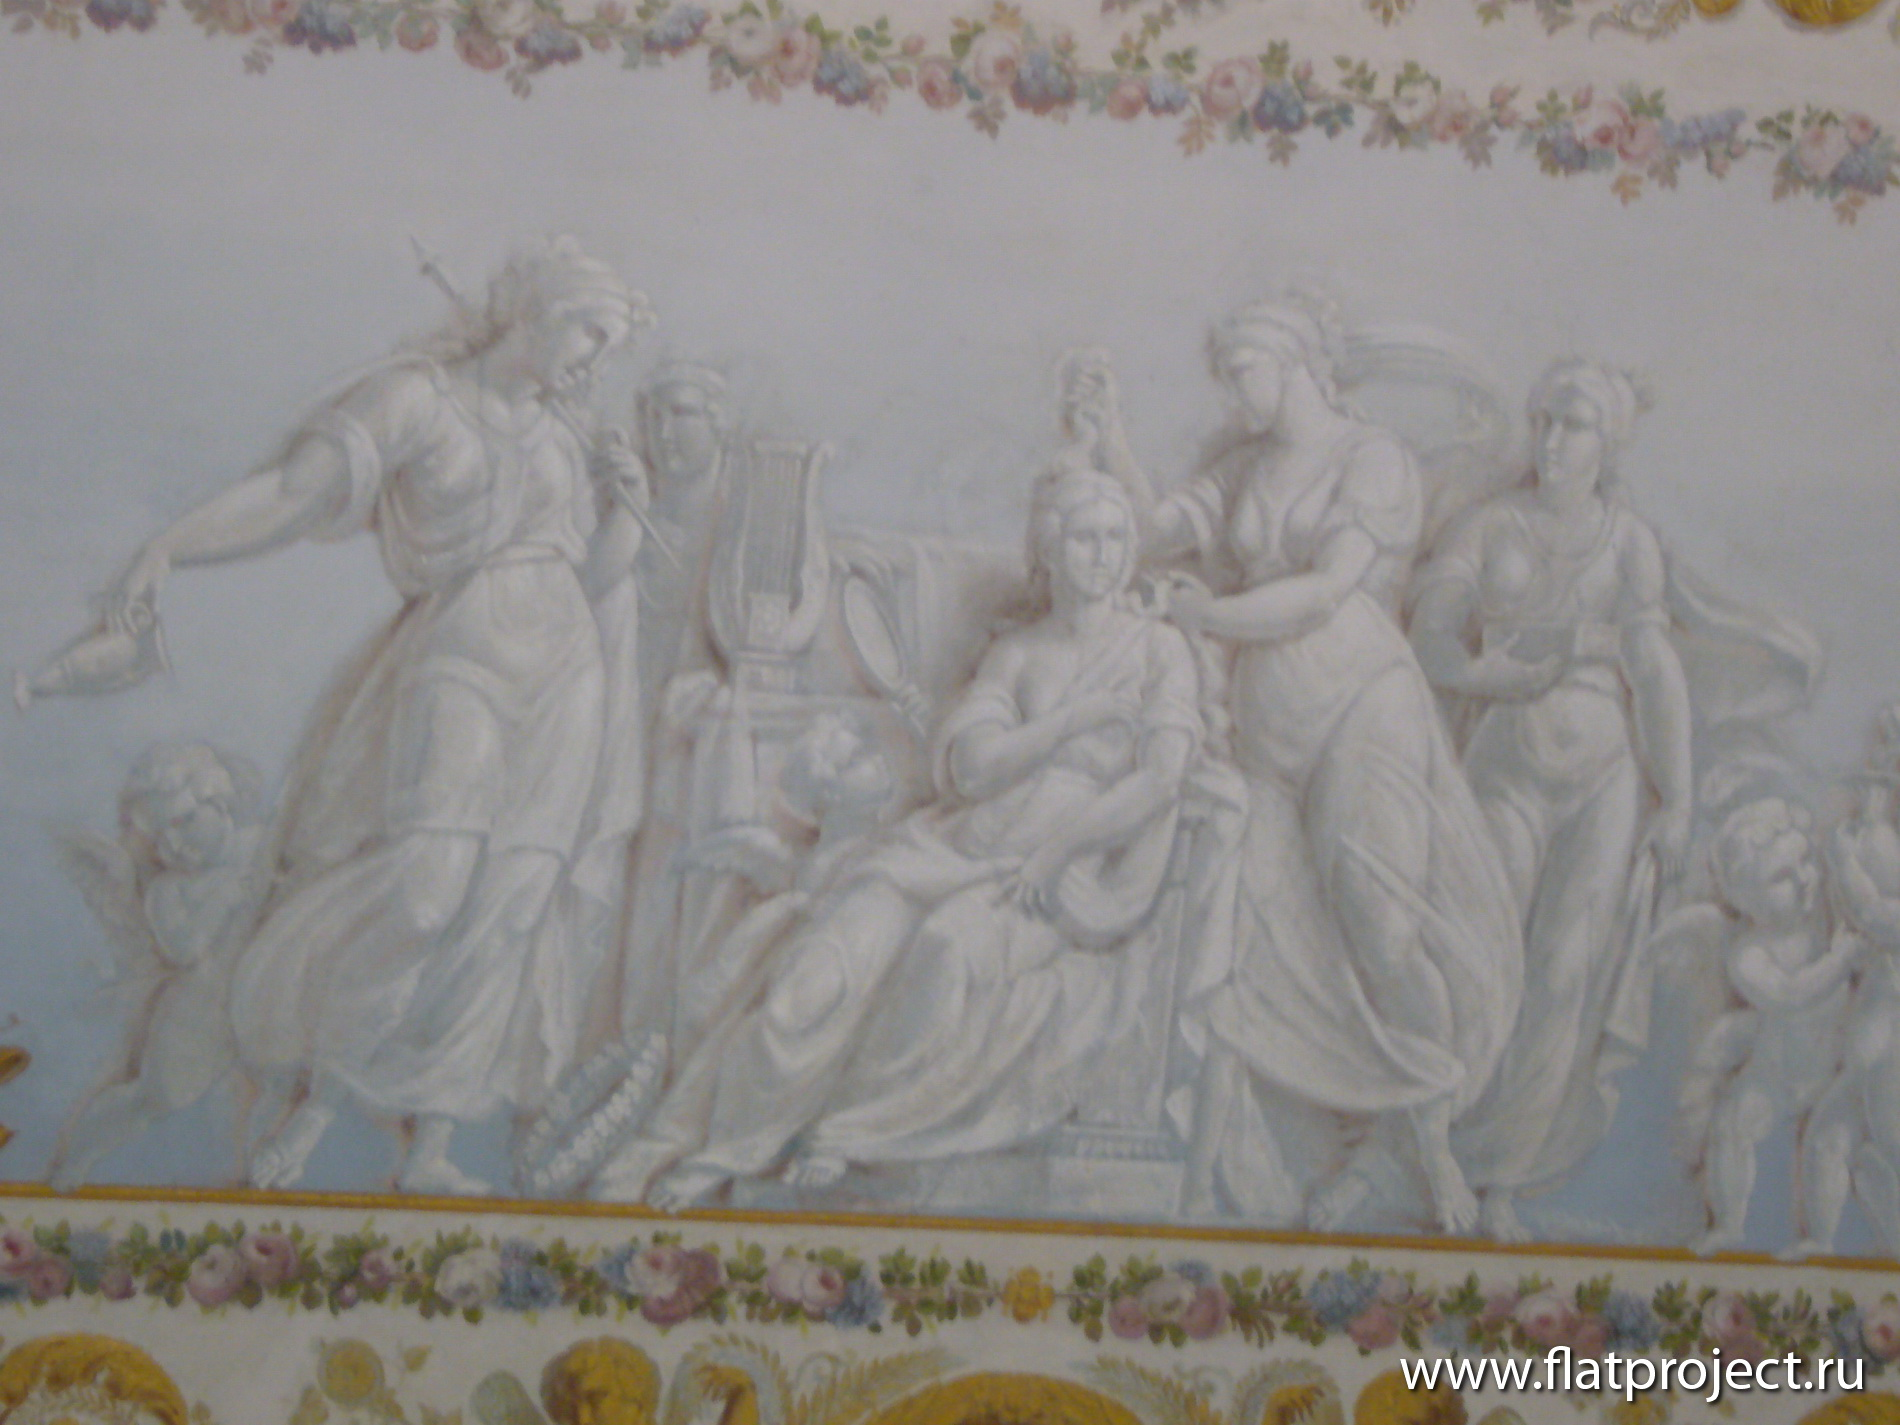 The State Russian museum interiors – photo 69